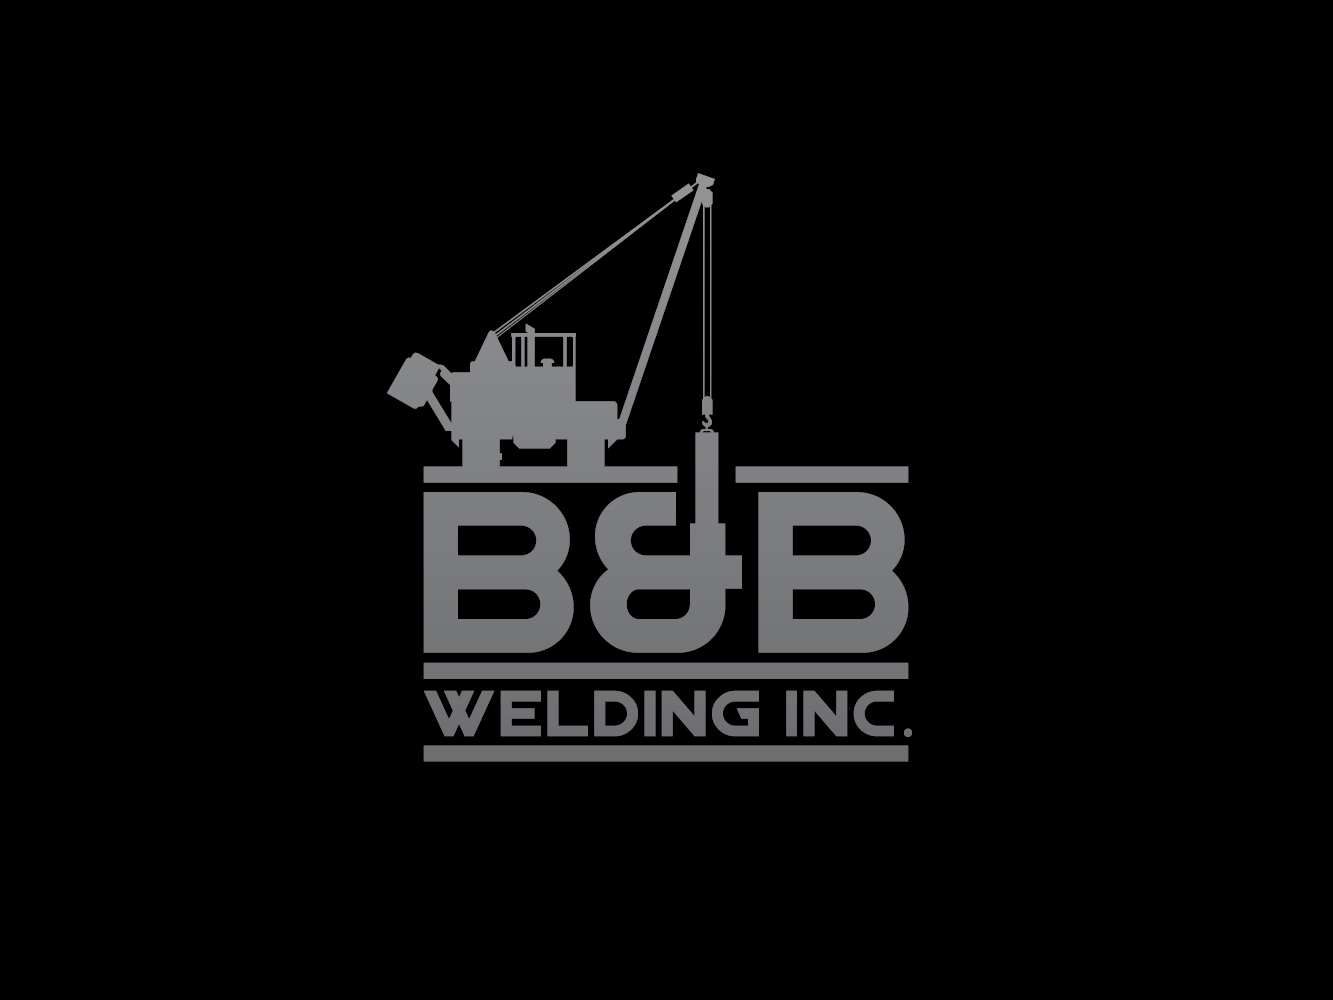 Logo Design by Cutris Lotter - Entry No. 65 in the Logo Design Contest Fun Logo Design for B&B Welding Inc..